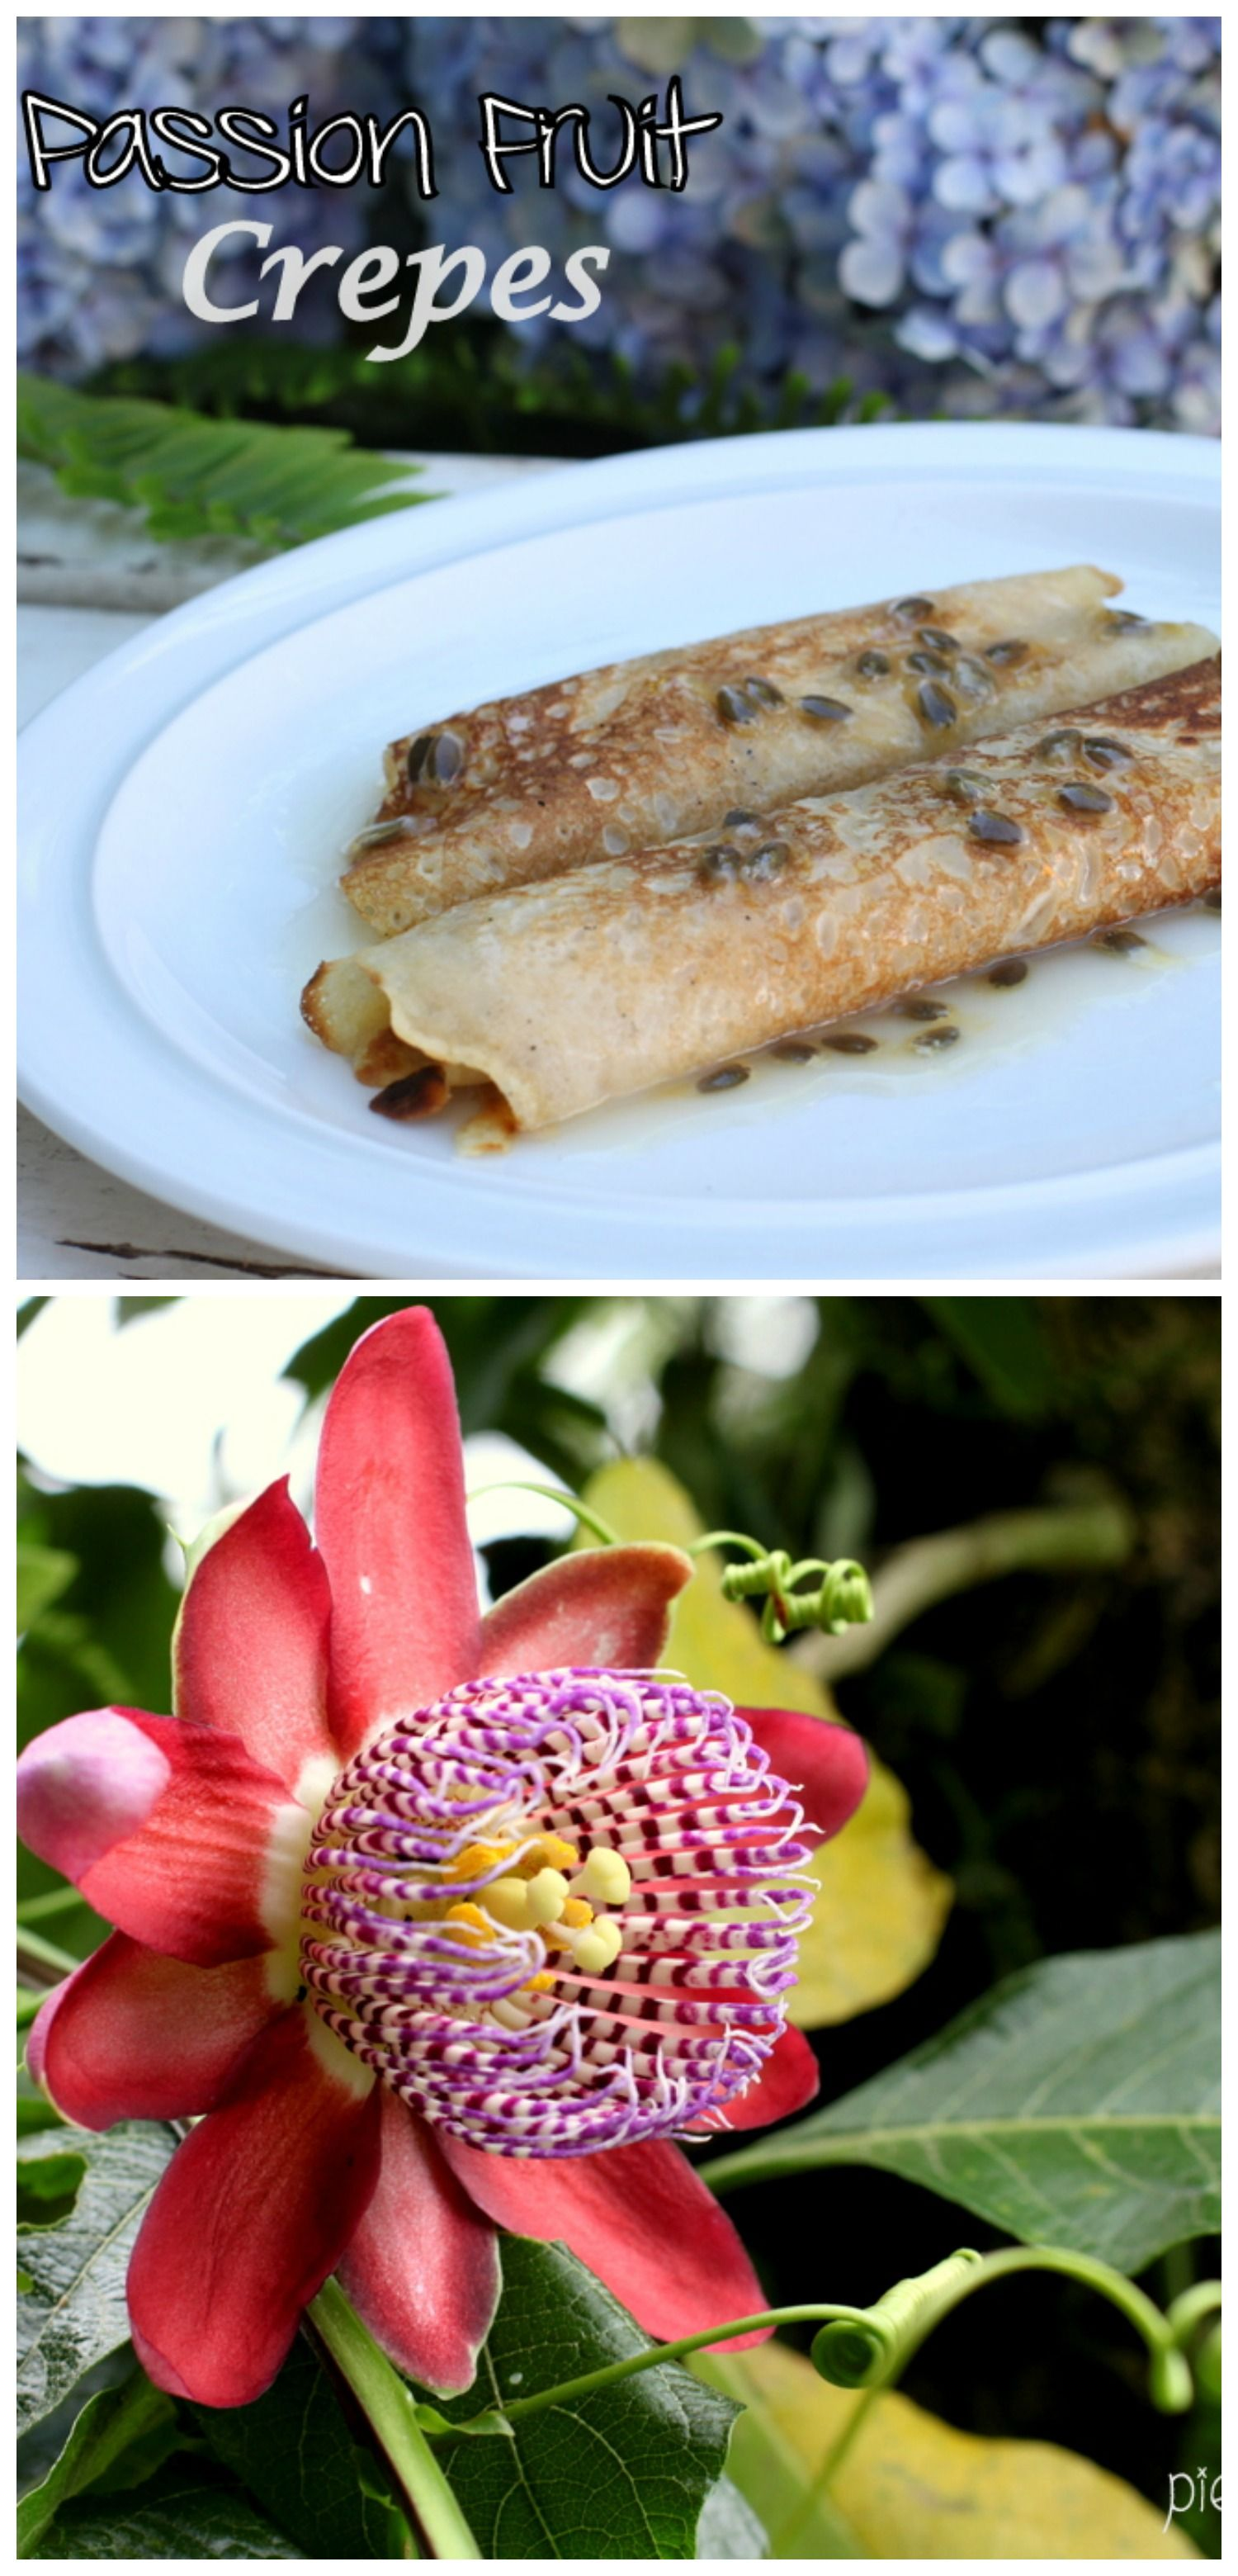 Passion Fruit Syrup on Crepes! The best morning treat for lazy mornings! Check out the amazing passion fruit flower!